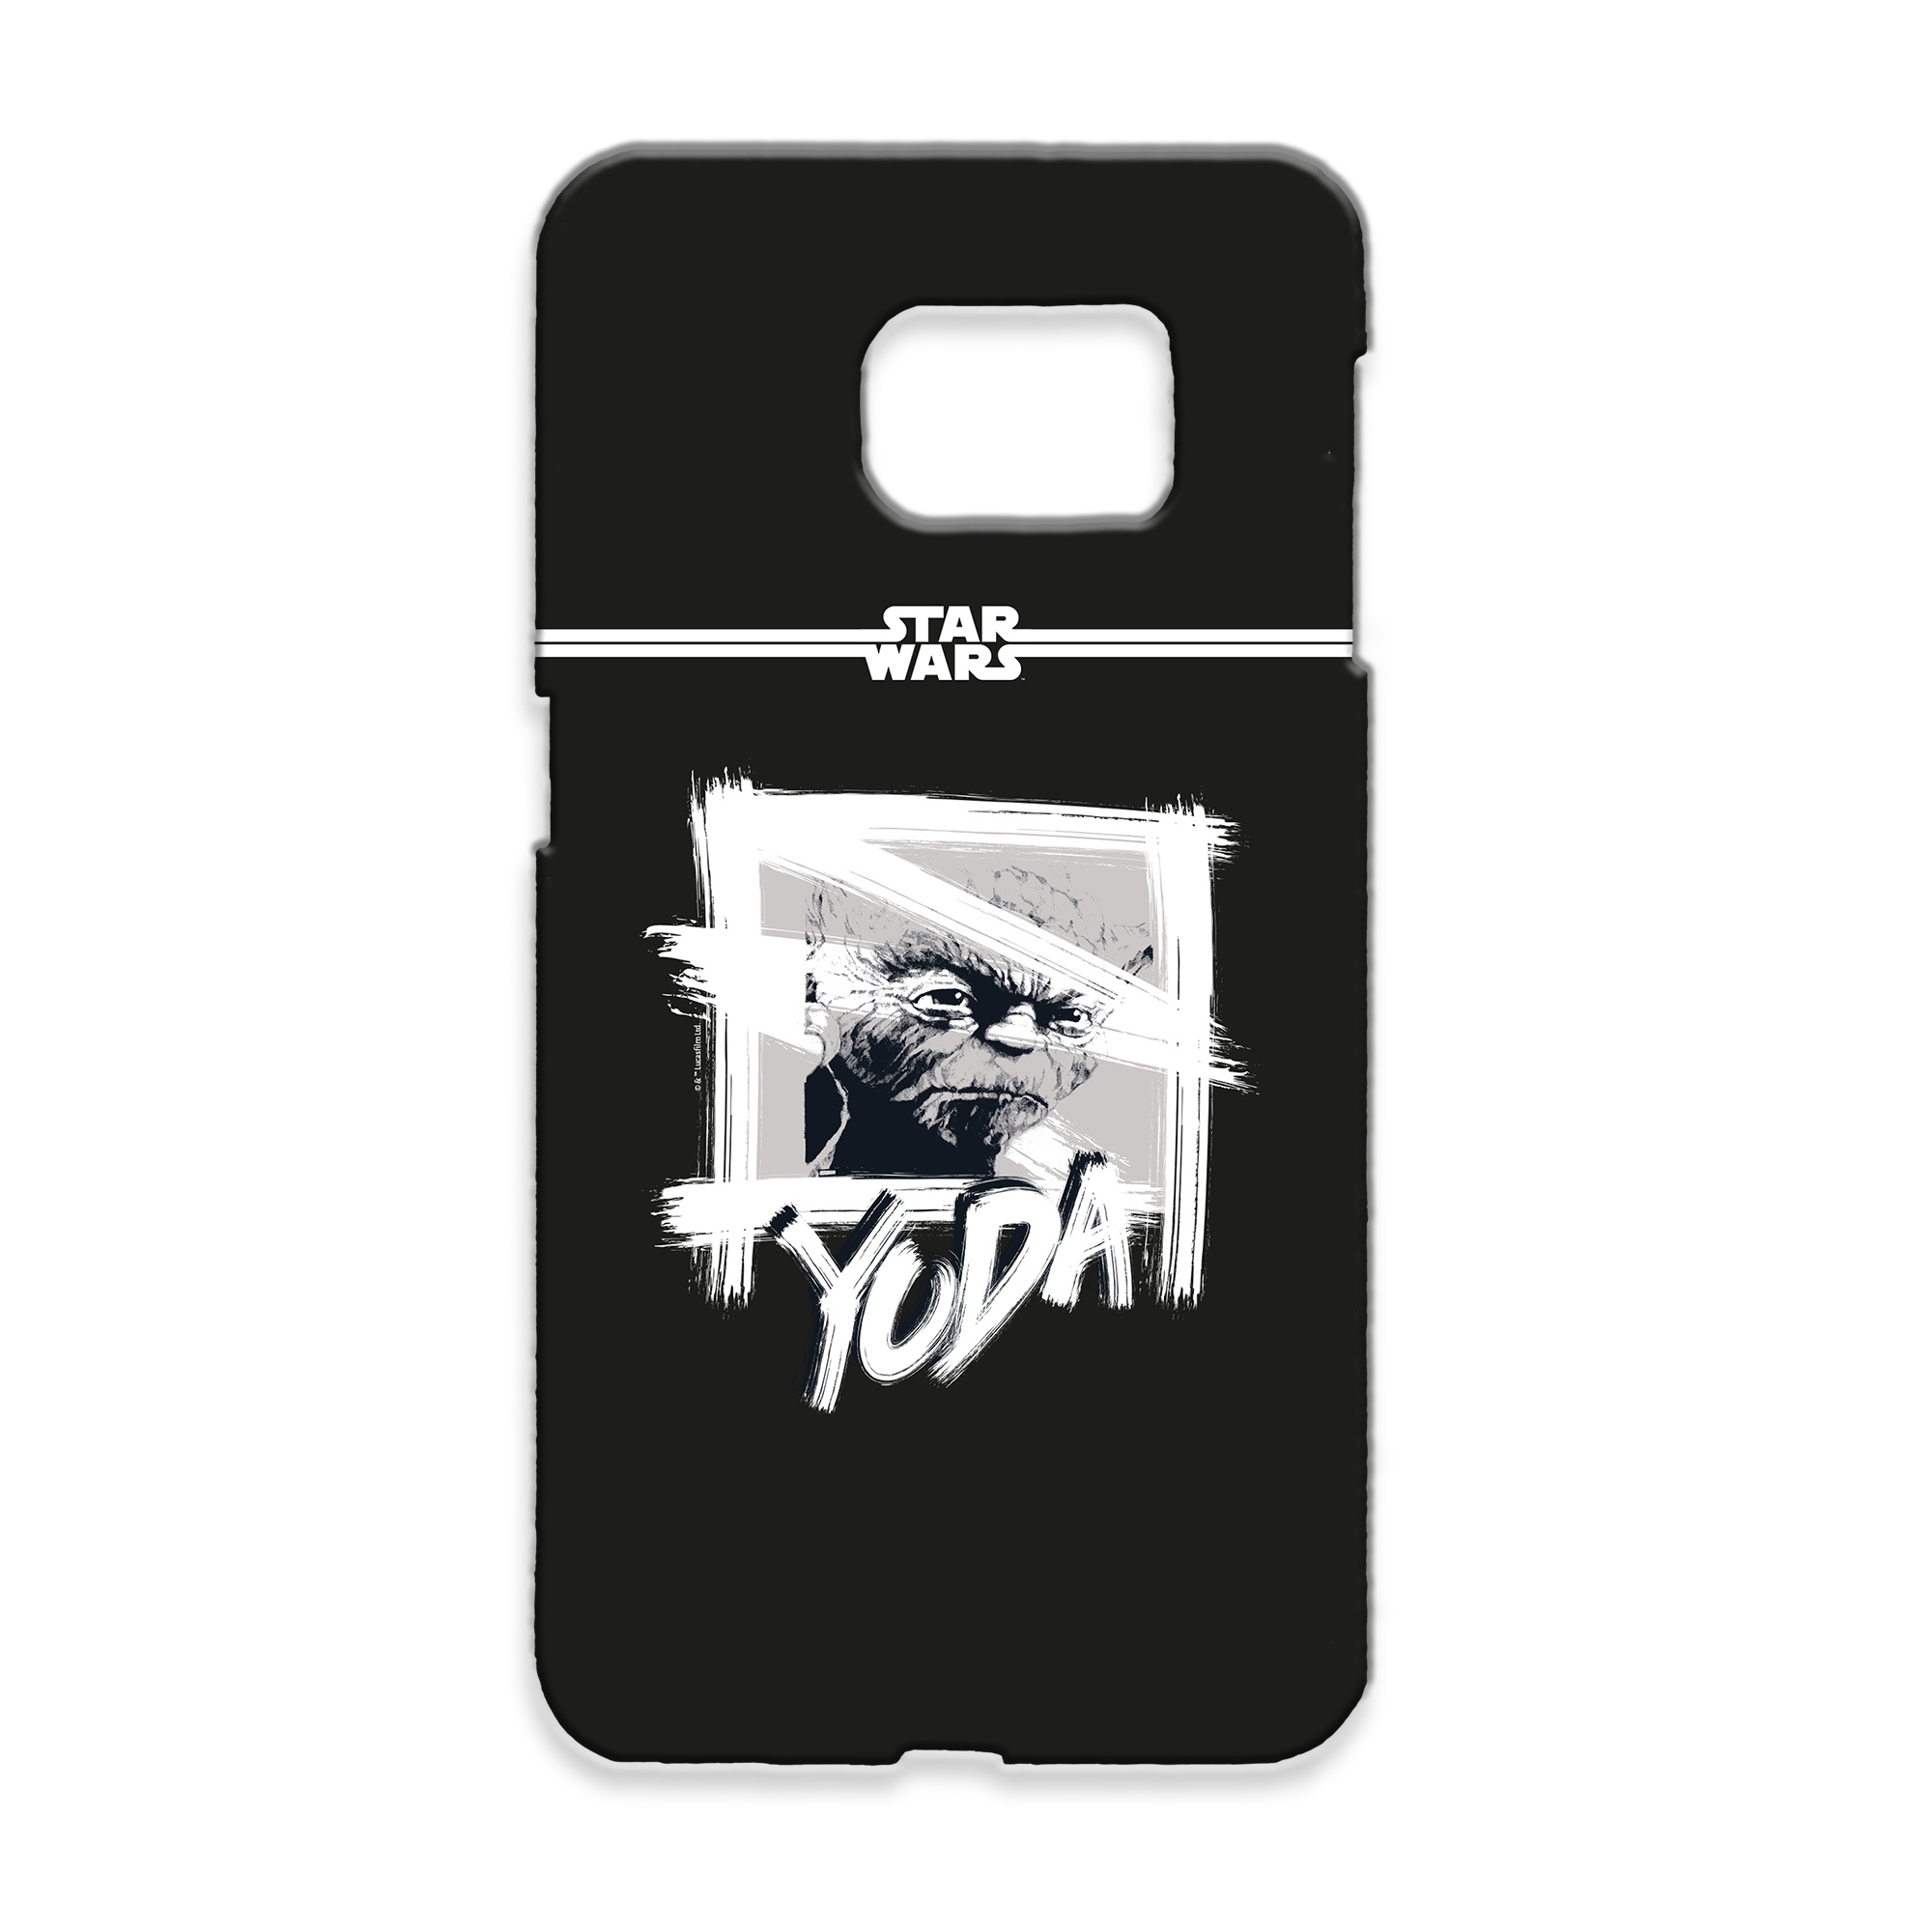 Star Wars Yoda Paint Samsung Phone Case